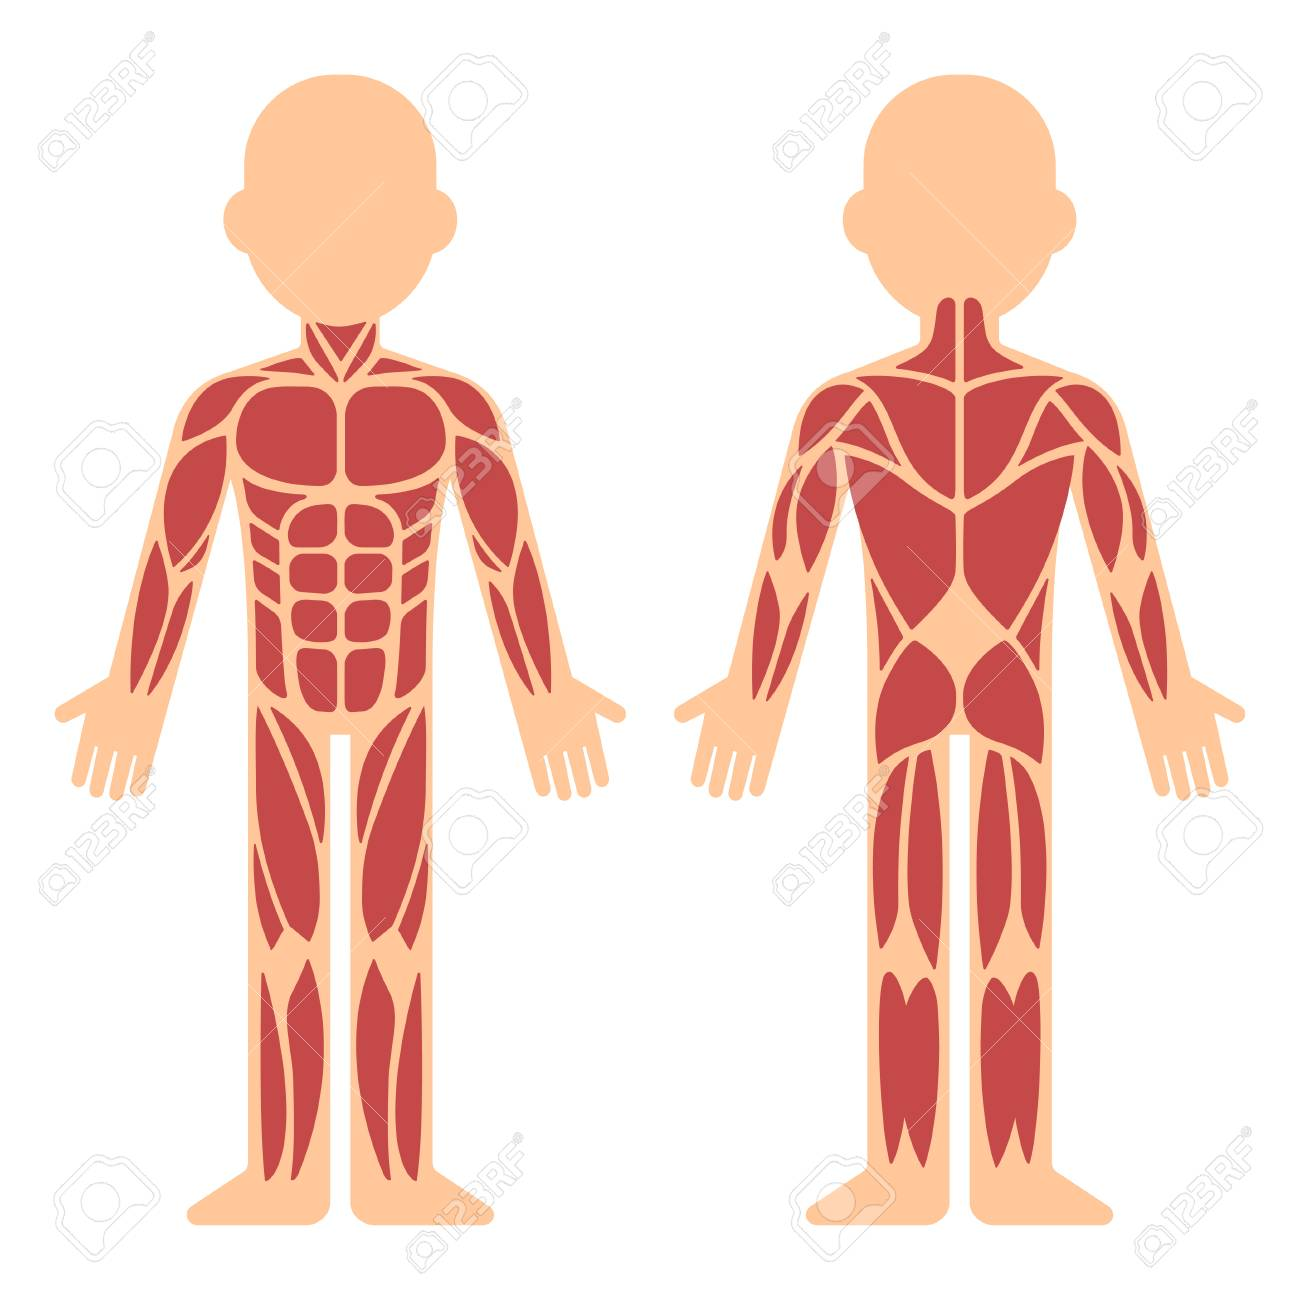 Stylized muscle anatomy chart, front and back. Male body major muscles, flat cartoon vector style infographic illustration. - 93802211